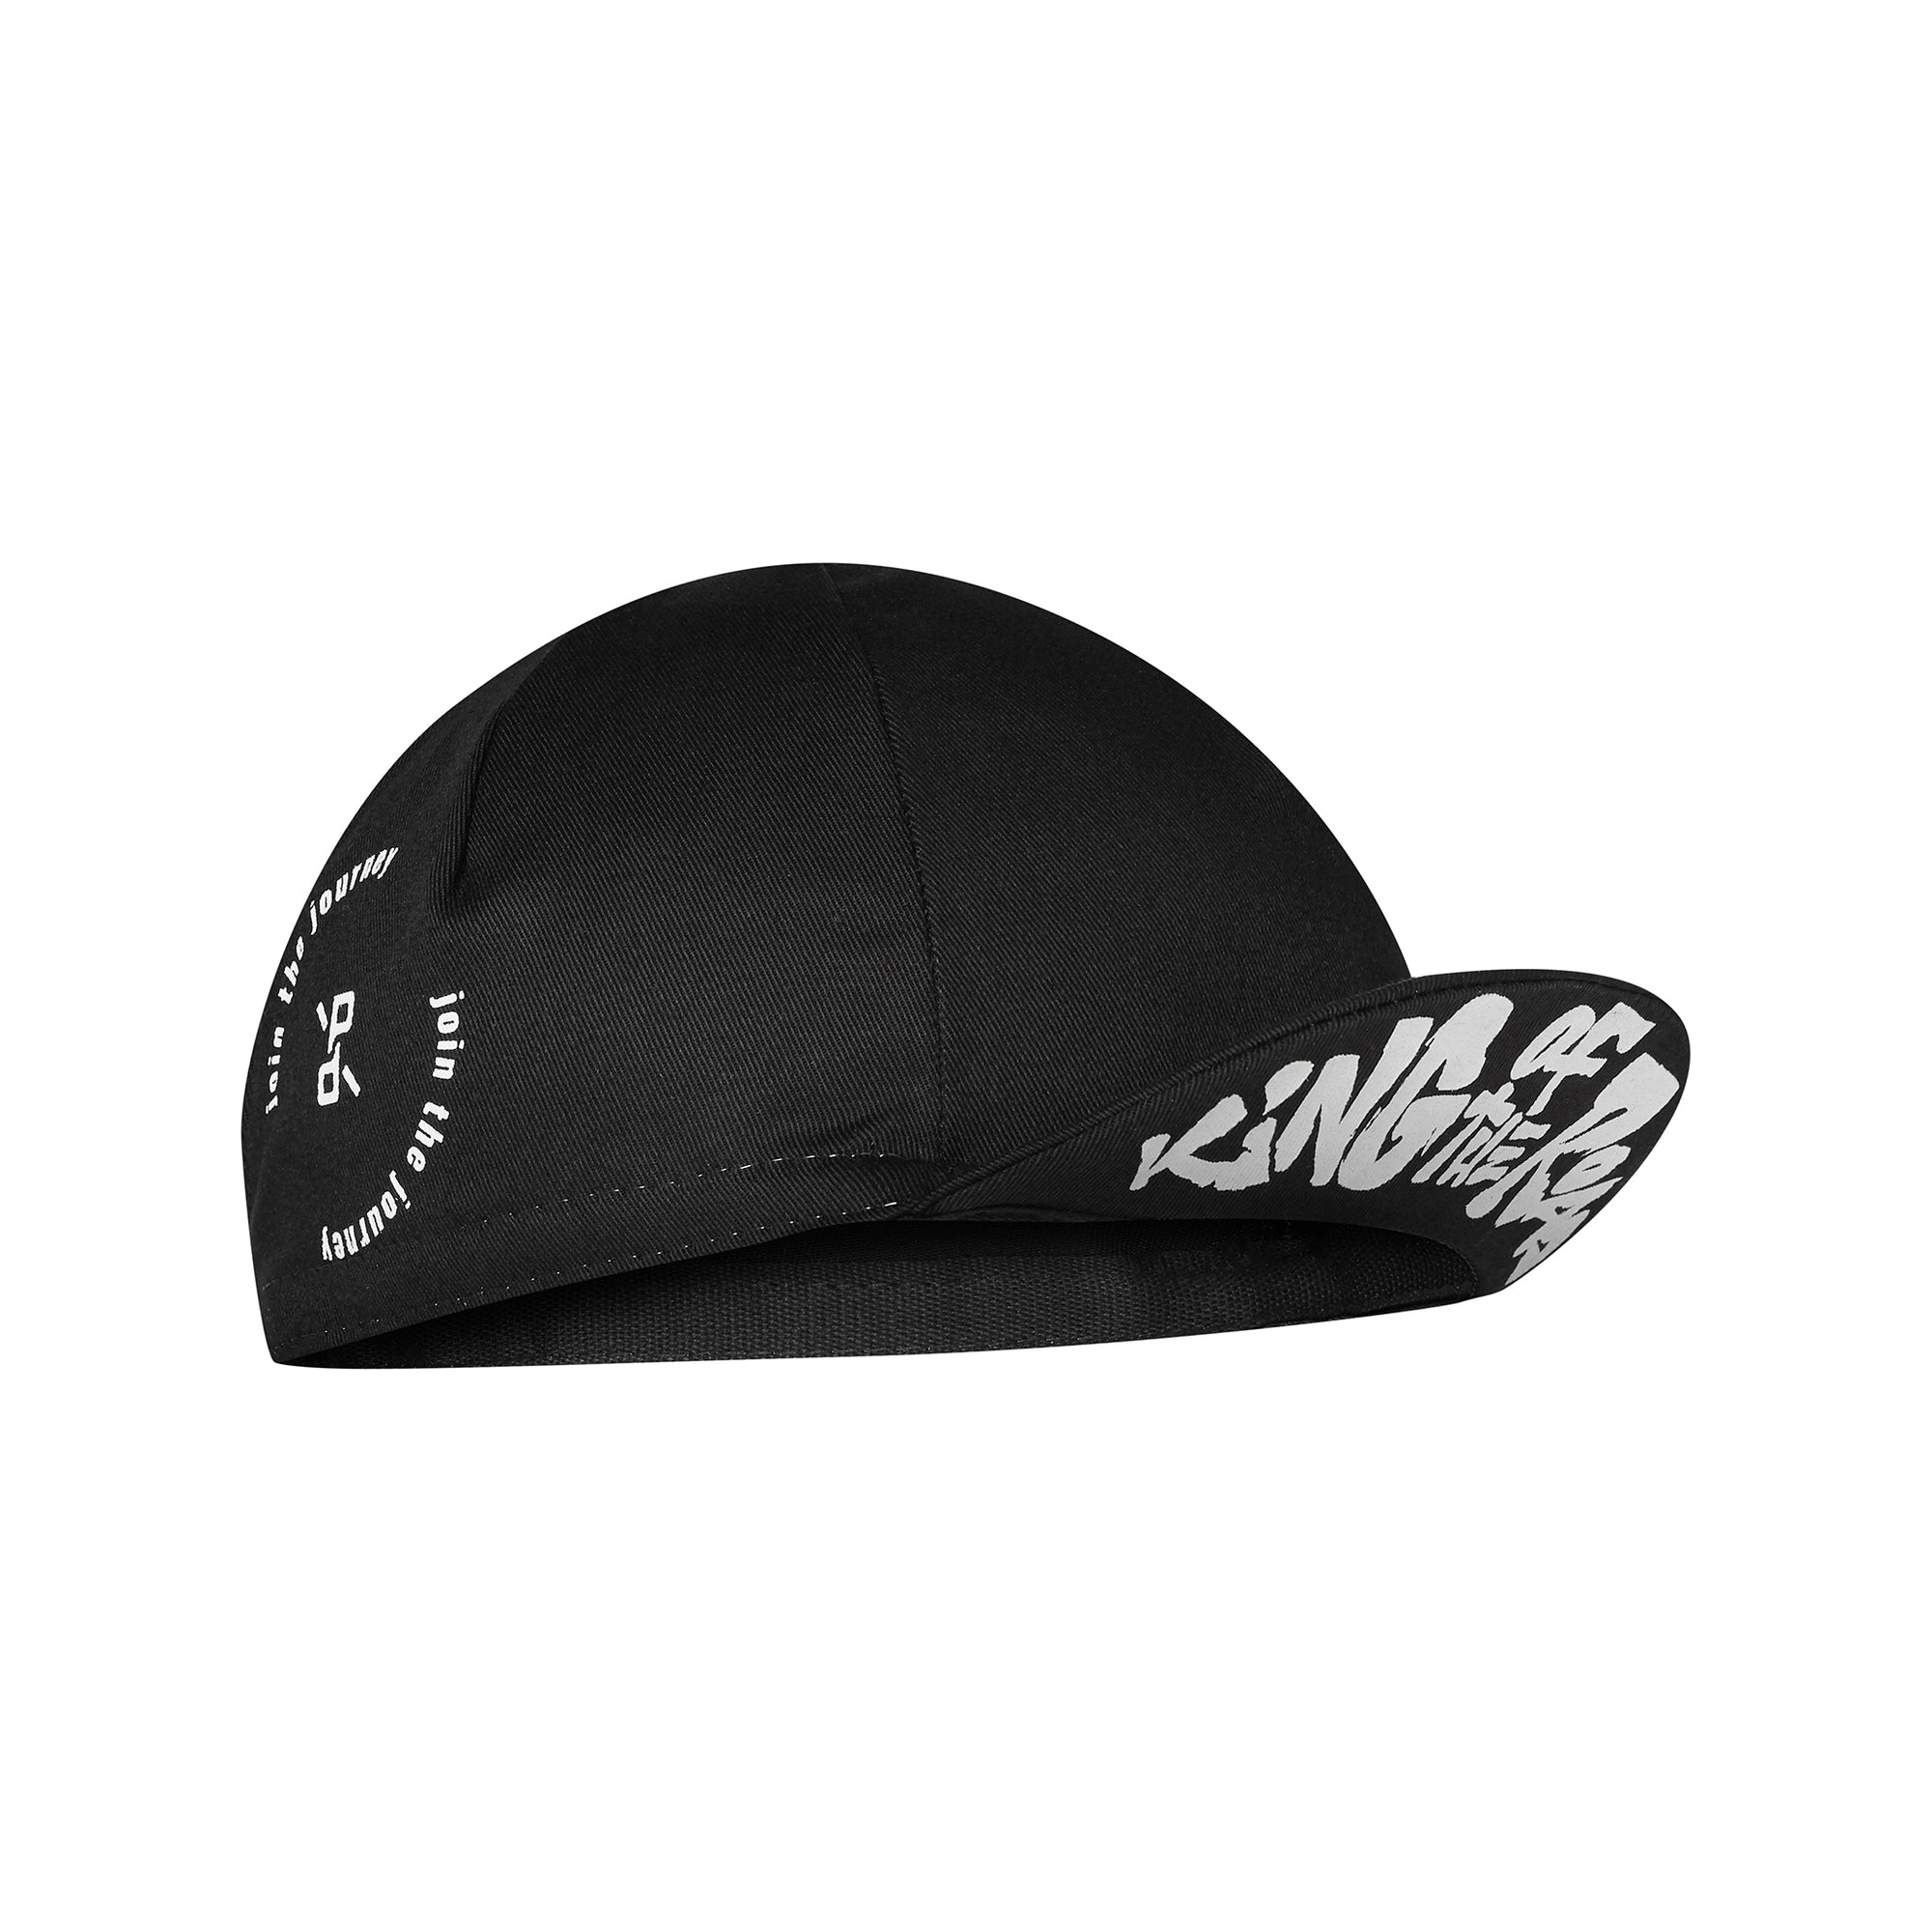 """King of the Road"" Cycling Cap"